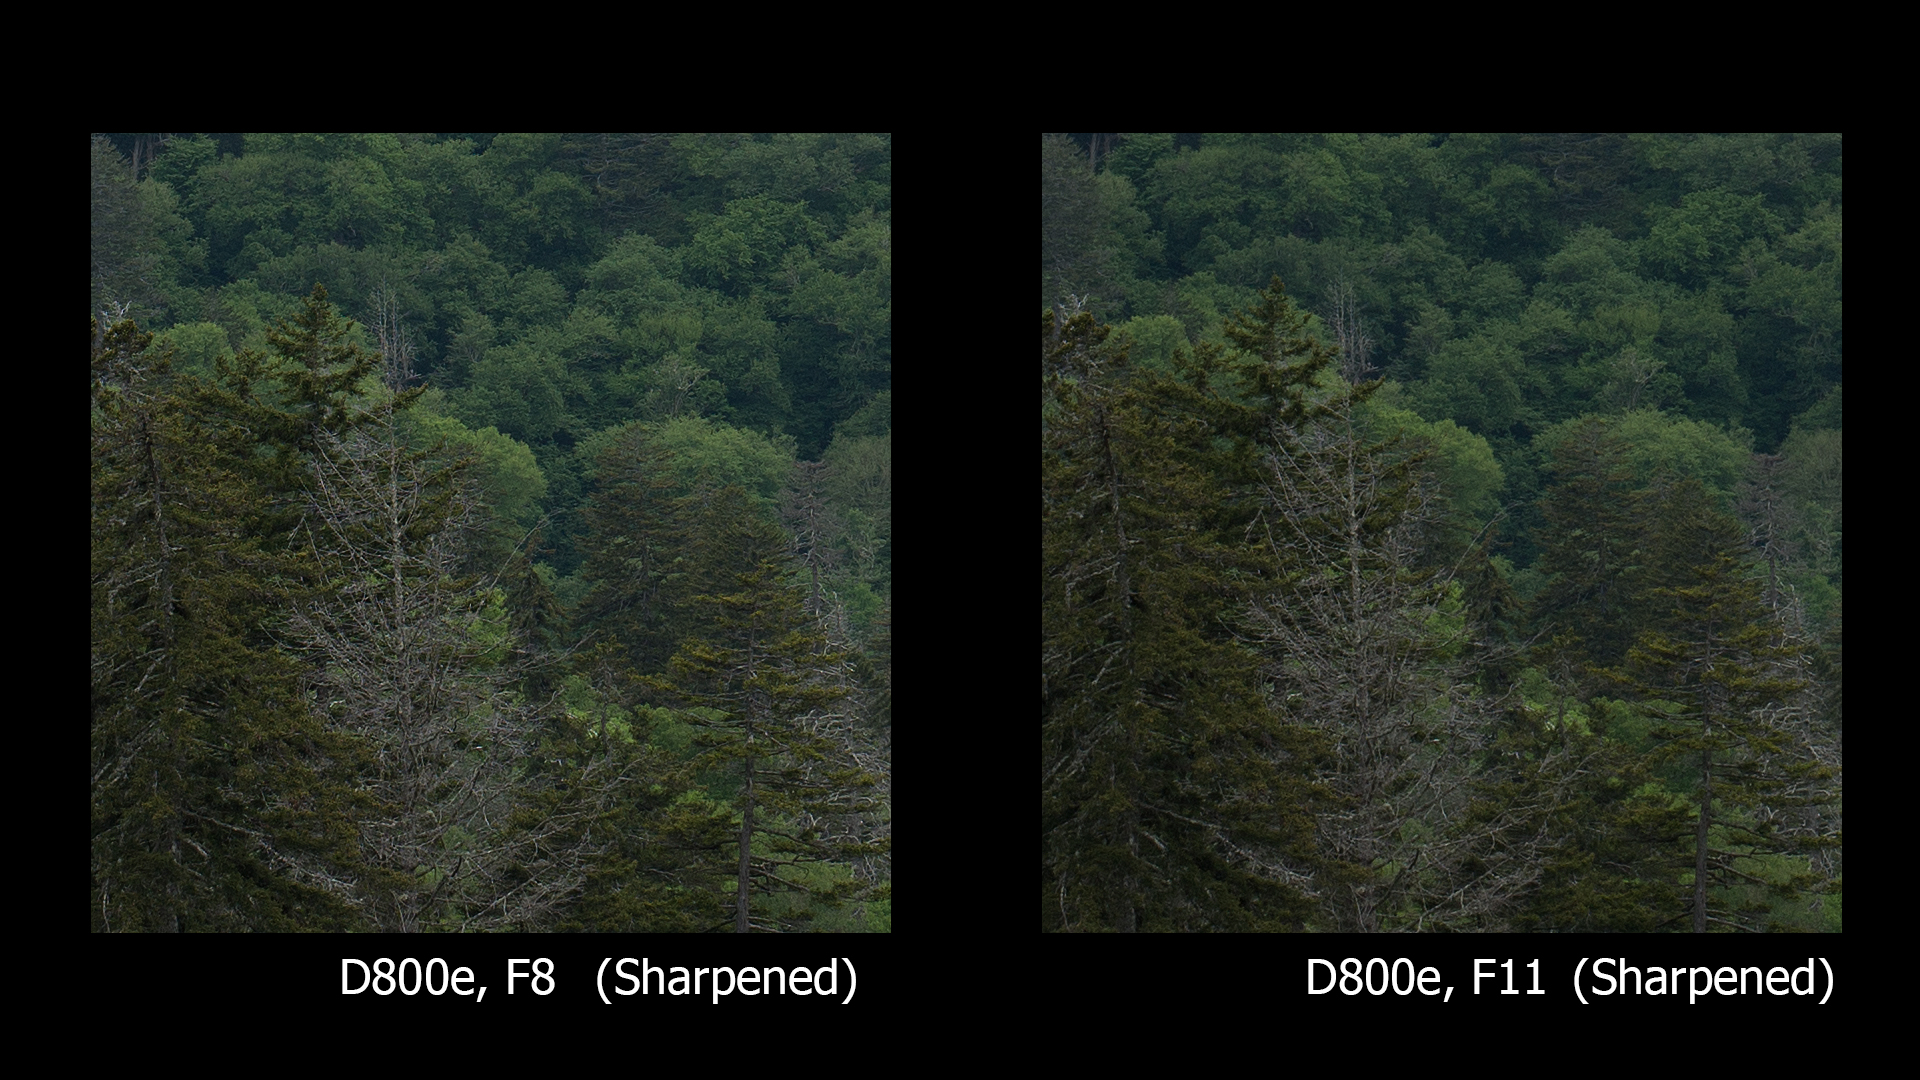 D800e, F8 and F11, BOTH sharpened